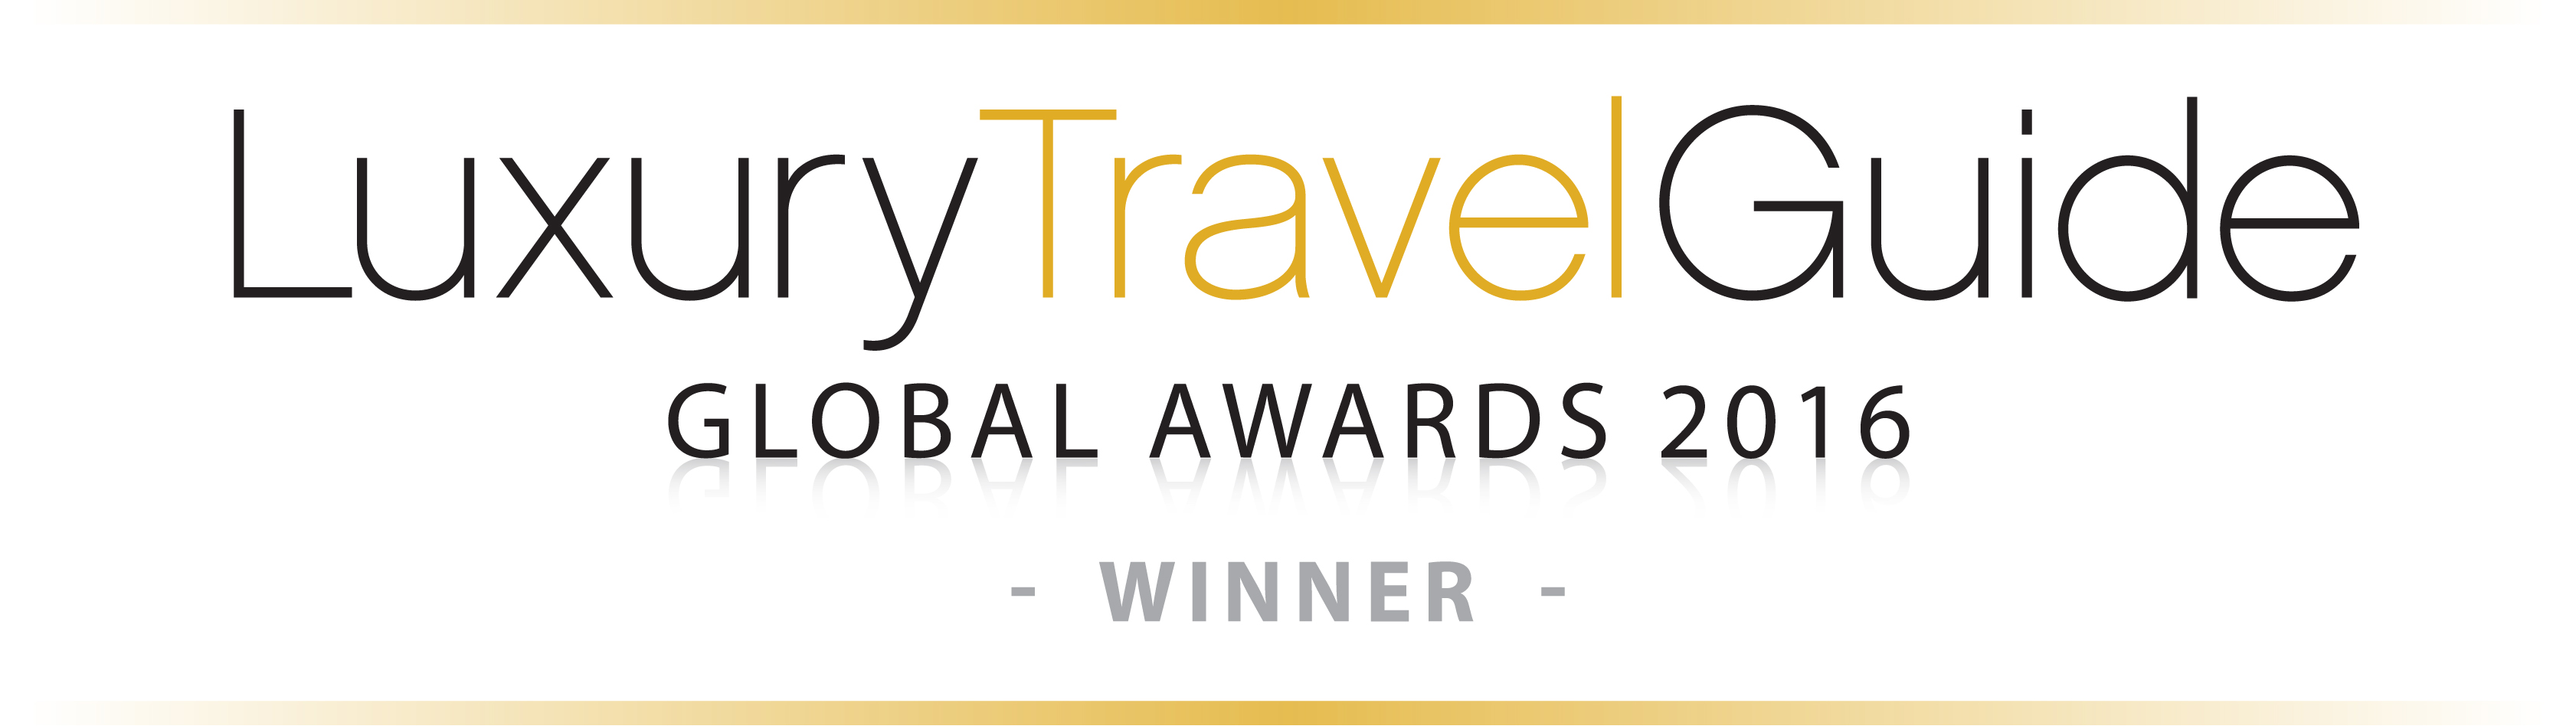 Luxury Travel Guide Winners